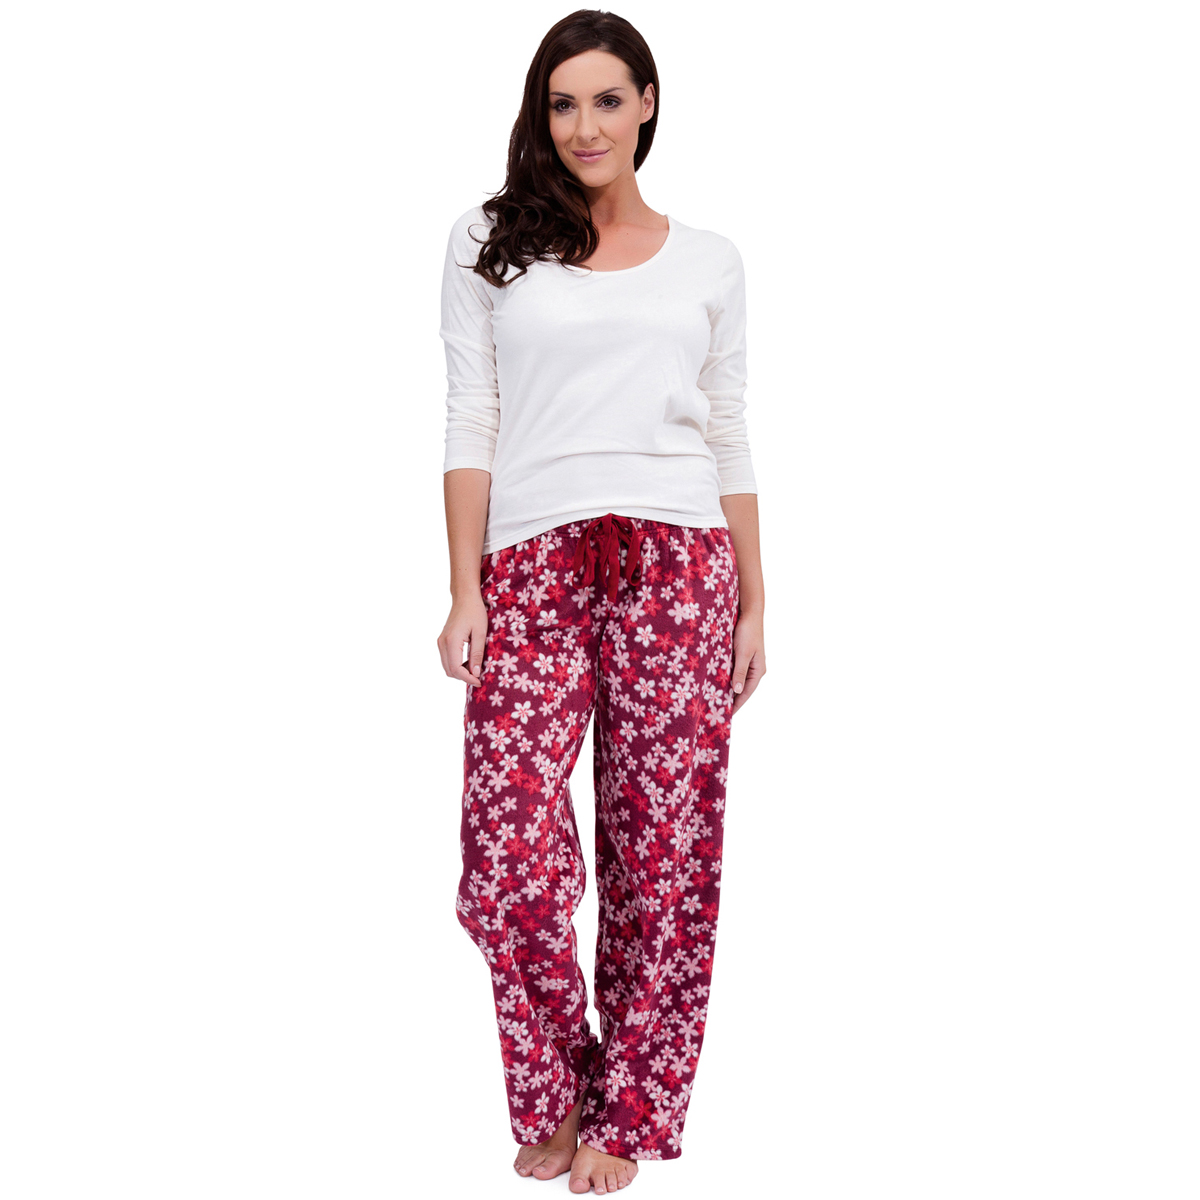 Find a great selection of pajamas for women at 0549sahibi.tk Shop short pajamas, knit pajamas and more from the best brands. Free shipping and returns.